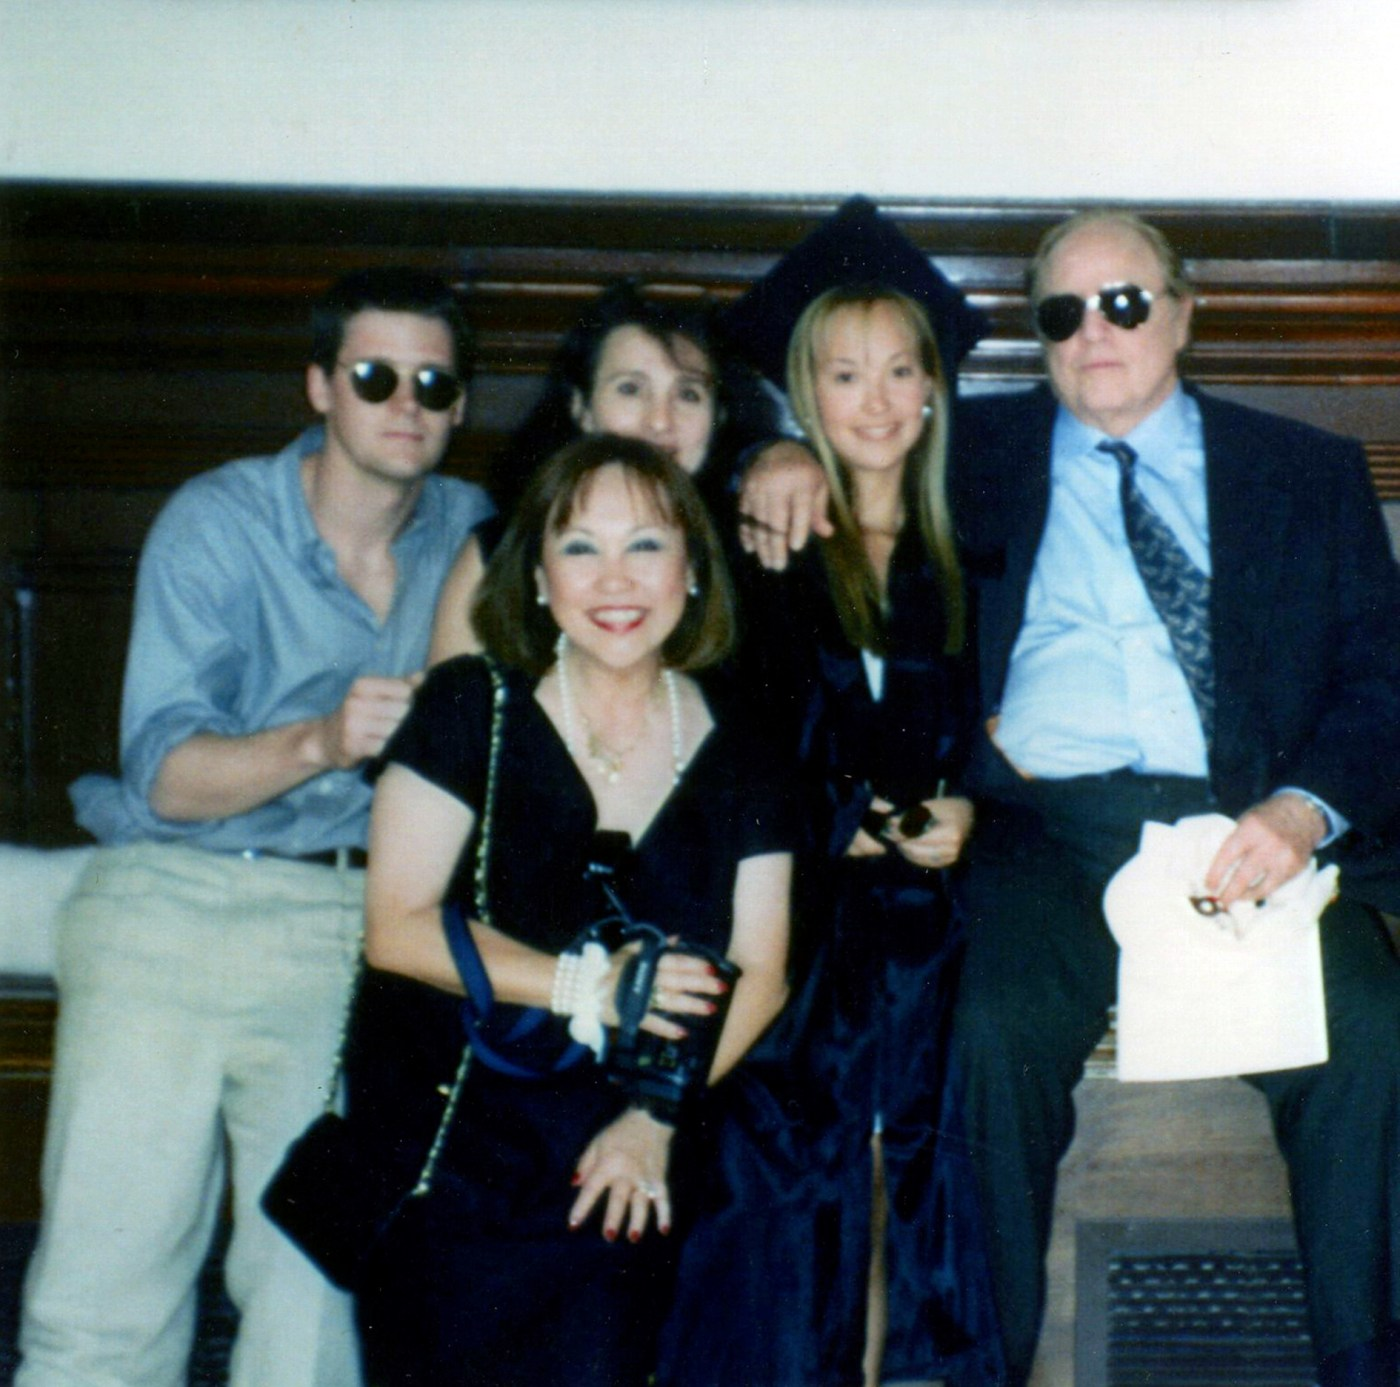 Brando Family - Petra with Marlon and her mother Caroline Barrett at her graduation from Brown University in May 1994, courtesy of Petra Brando